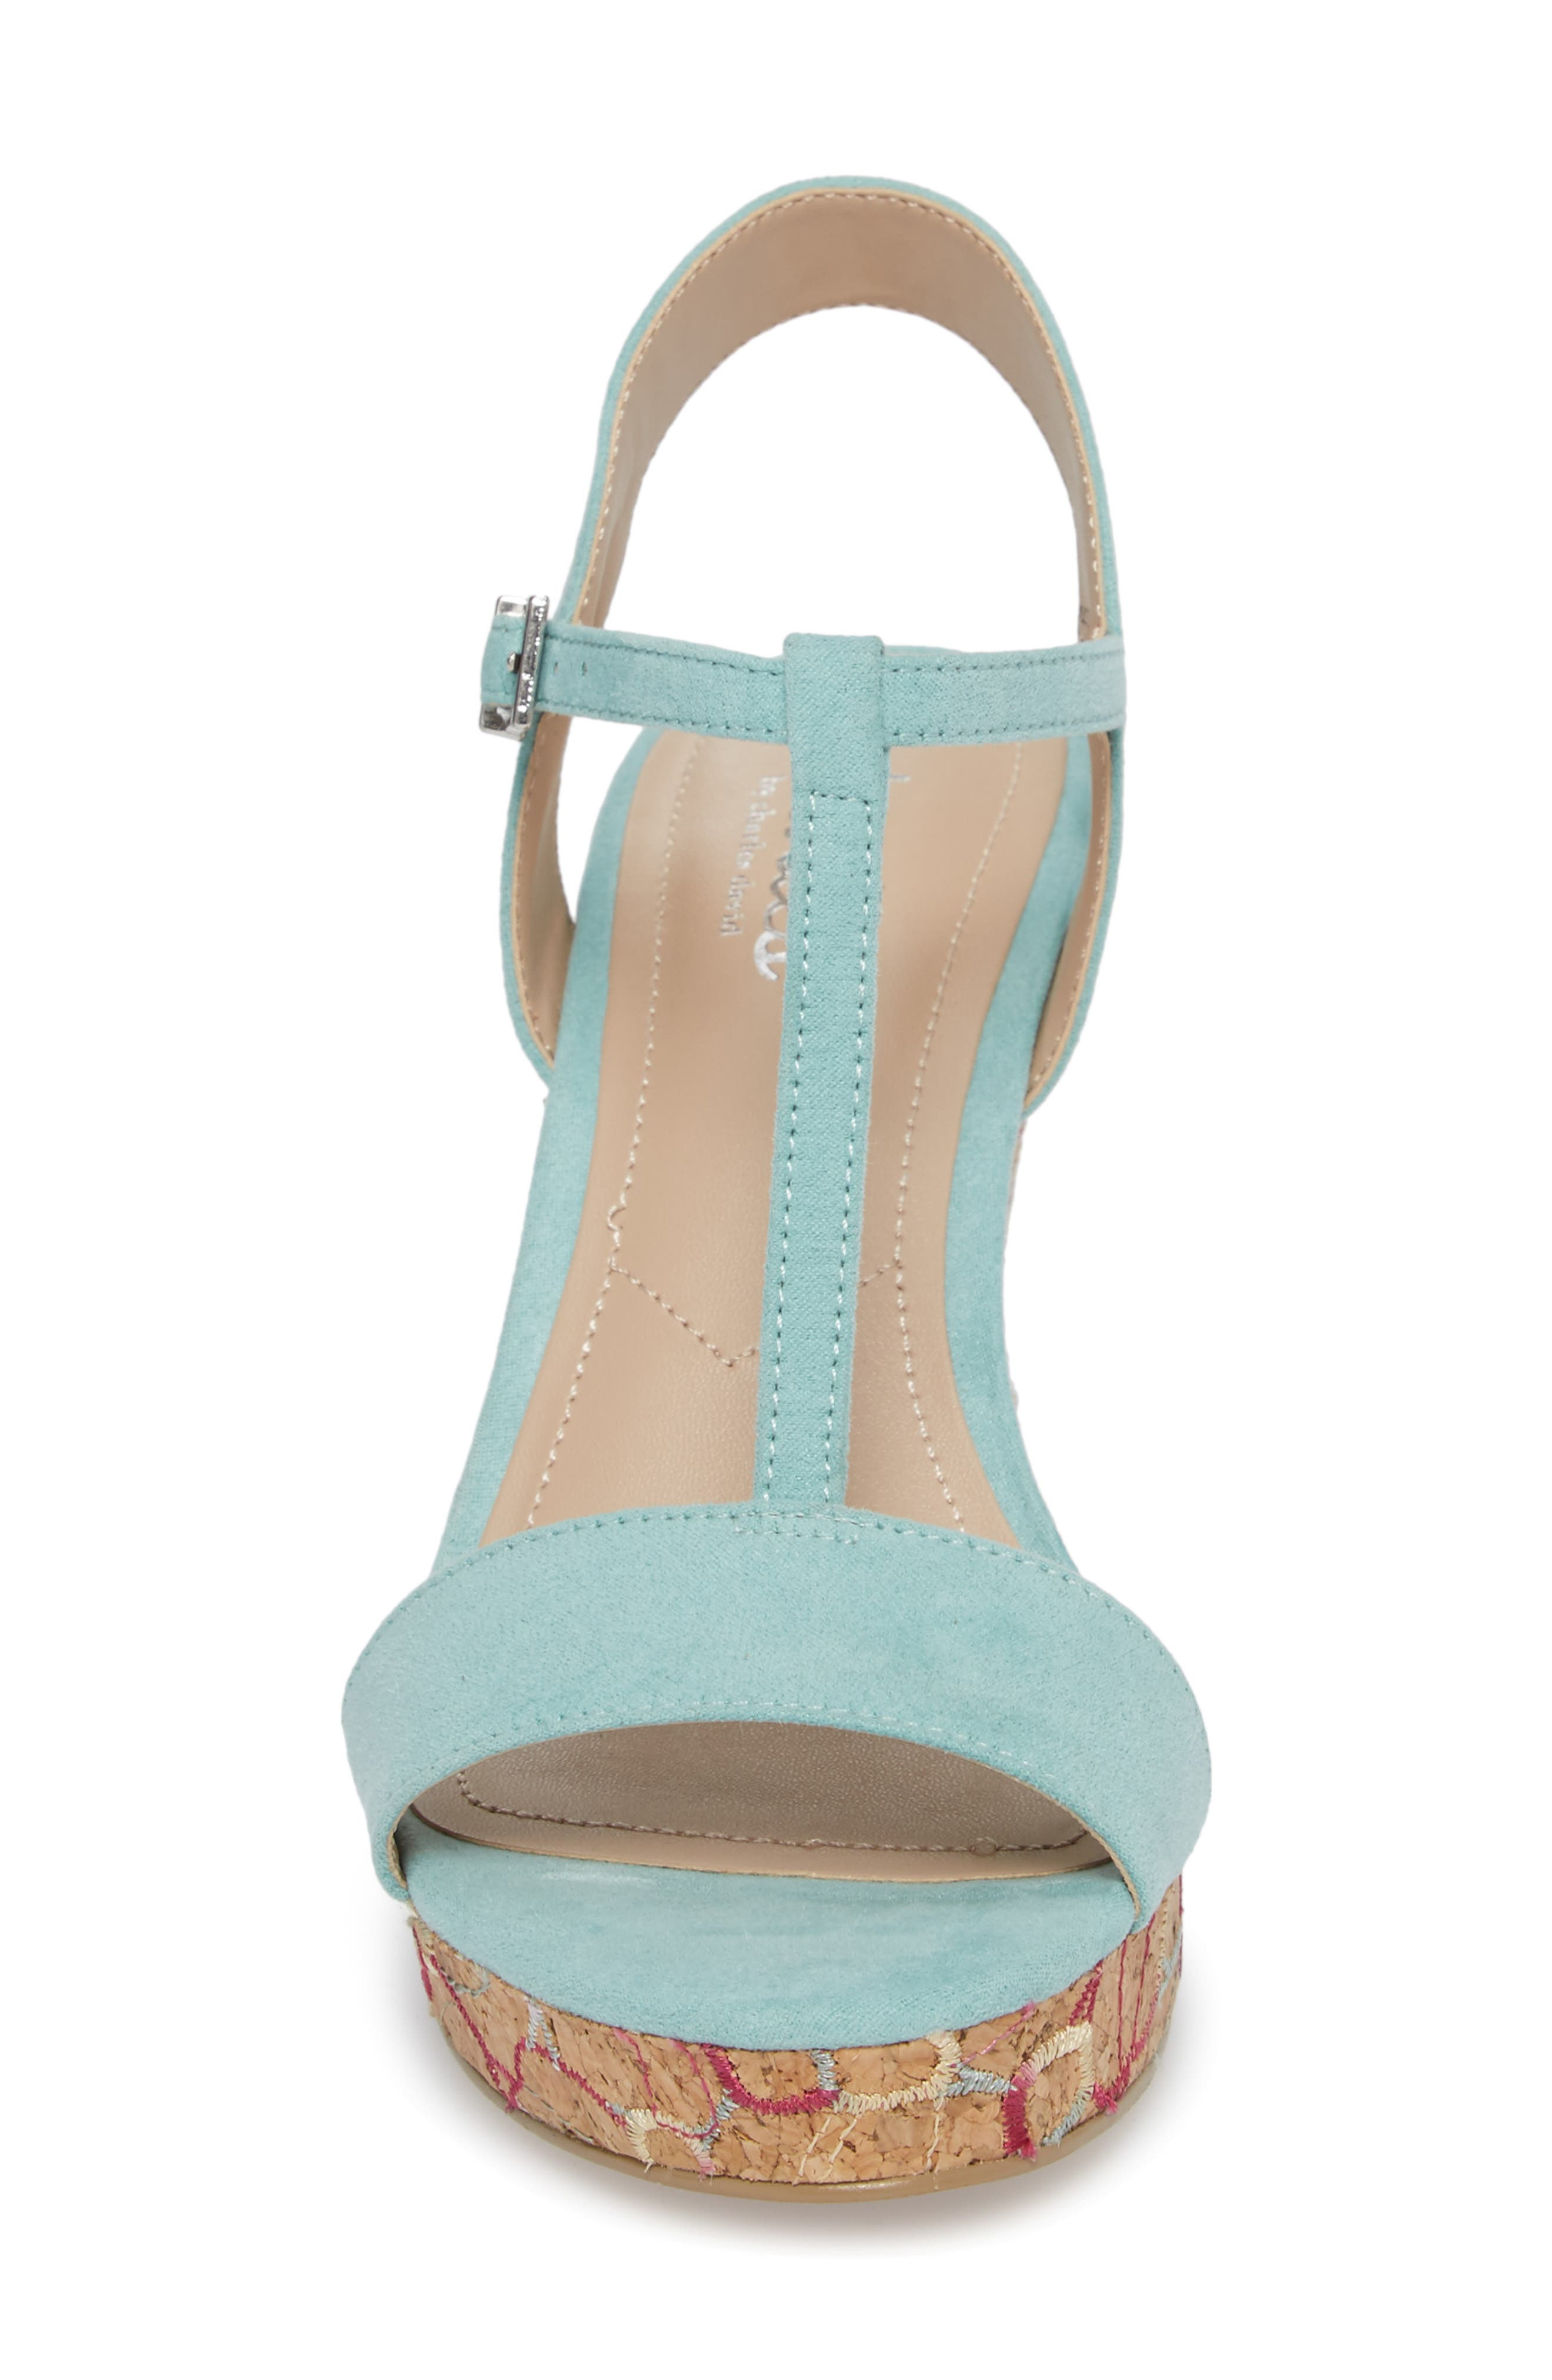 Laney Embroidered Wedge Sandal,                             Alternate thumbnail 4, color,                             MINT GREEN SUEDE